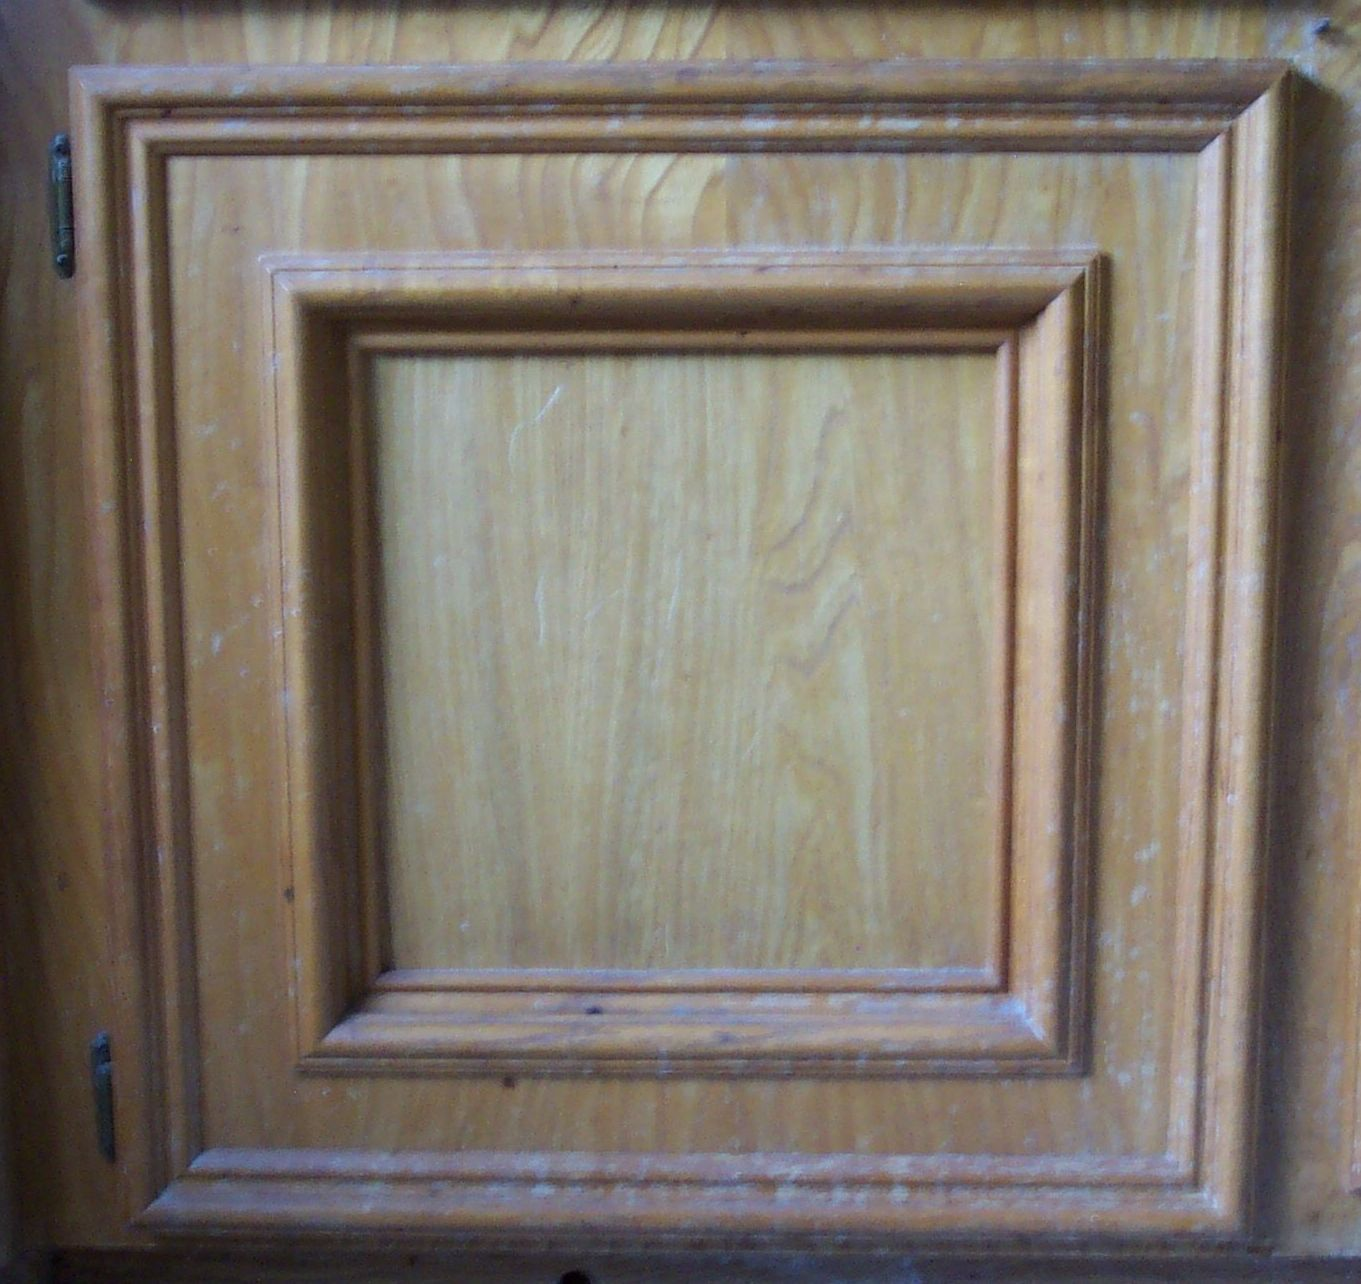 kitchen cabinet doors replacement This article explains what a DIY er needs to know about building kitchen cabinet doors It discusses wood selection finish selection and types of hinges